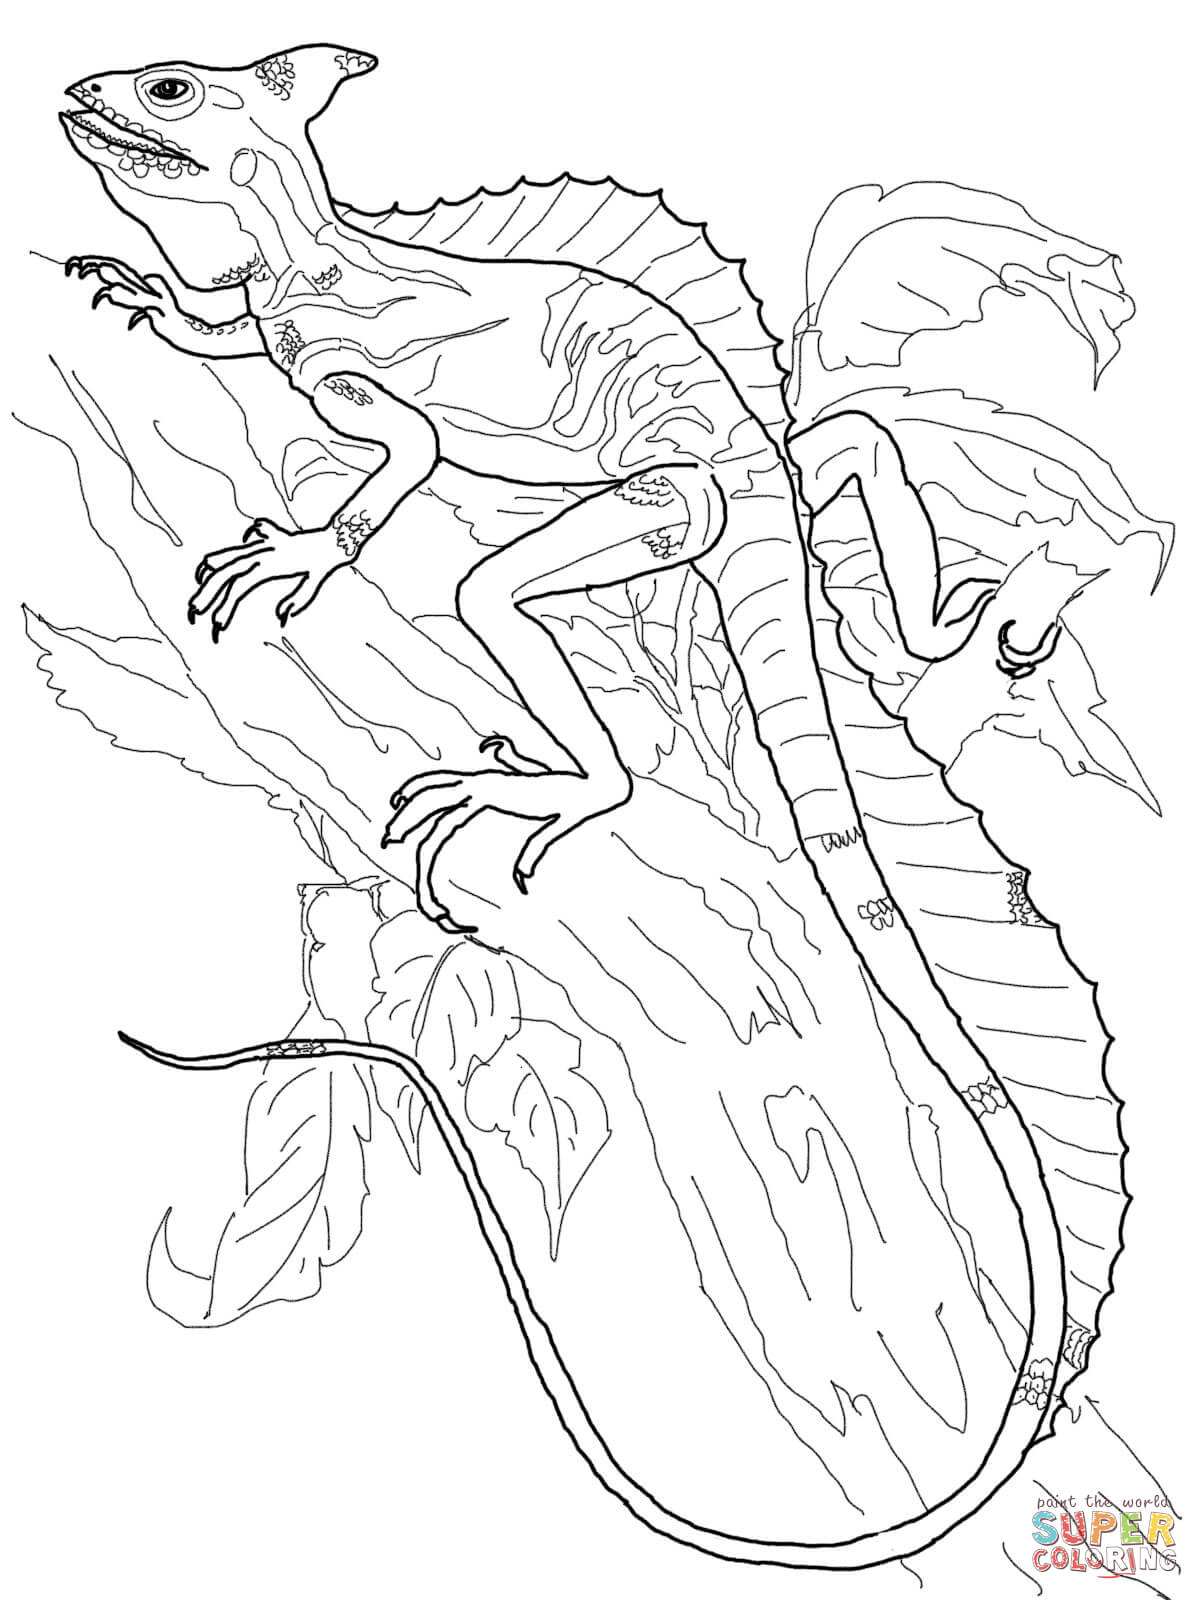 picture of a lizard to colour in projects design reptile coloring pages lizard free of picture to a in colour lizard